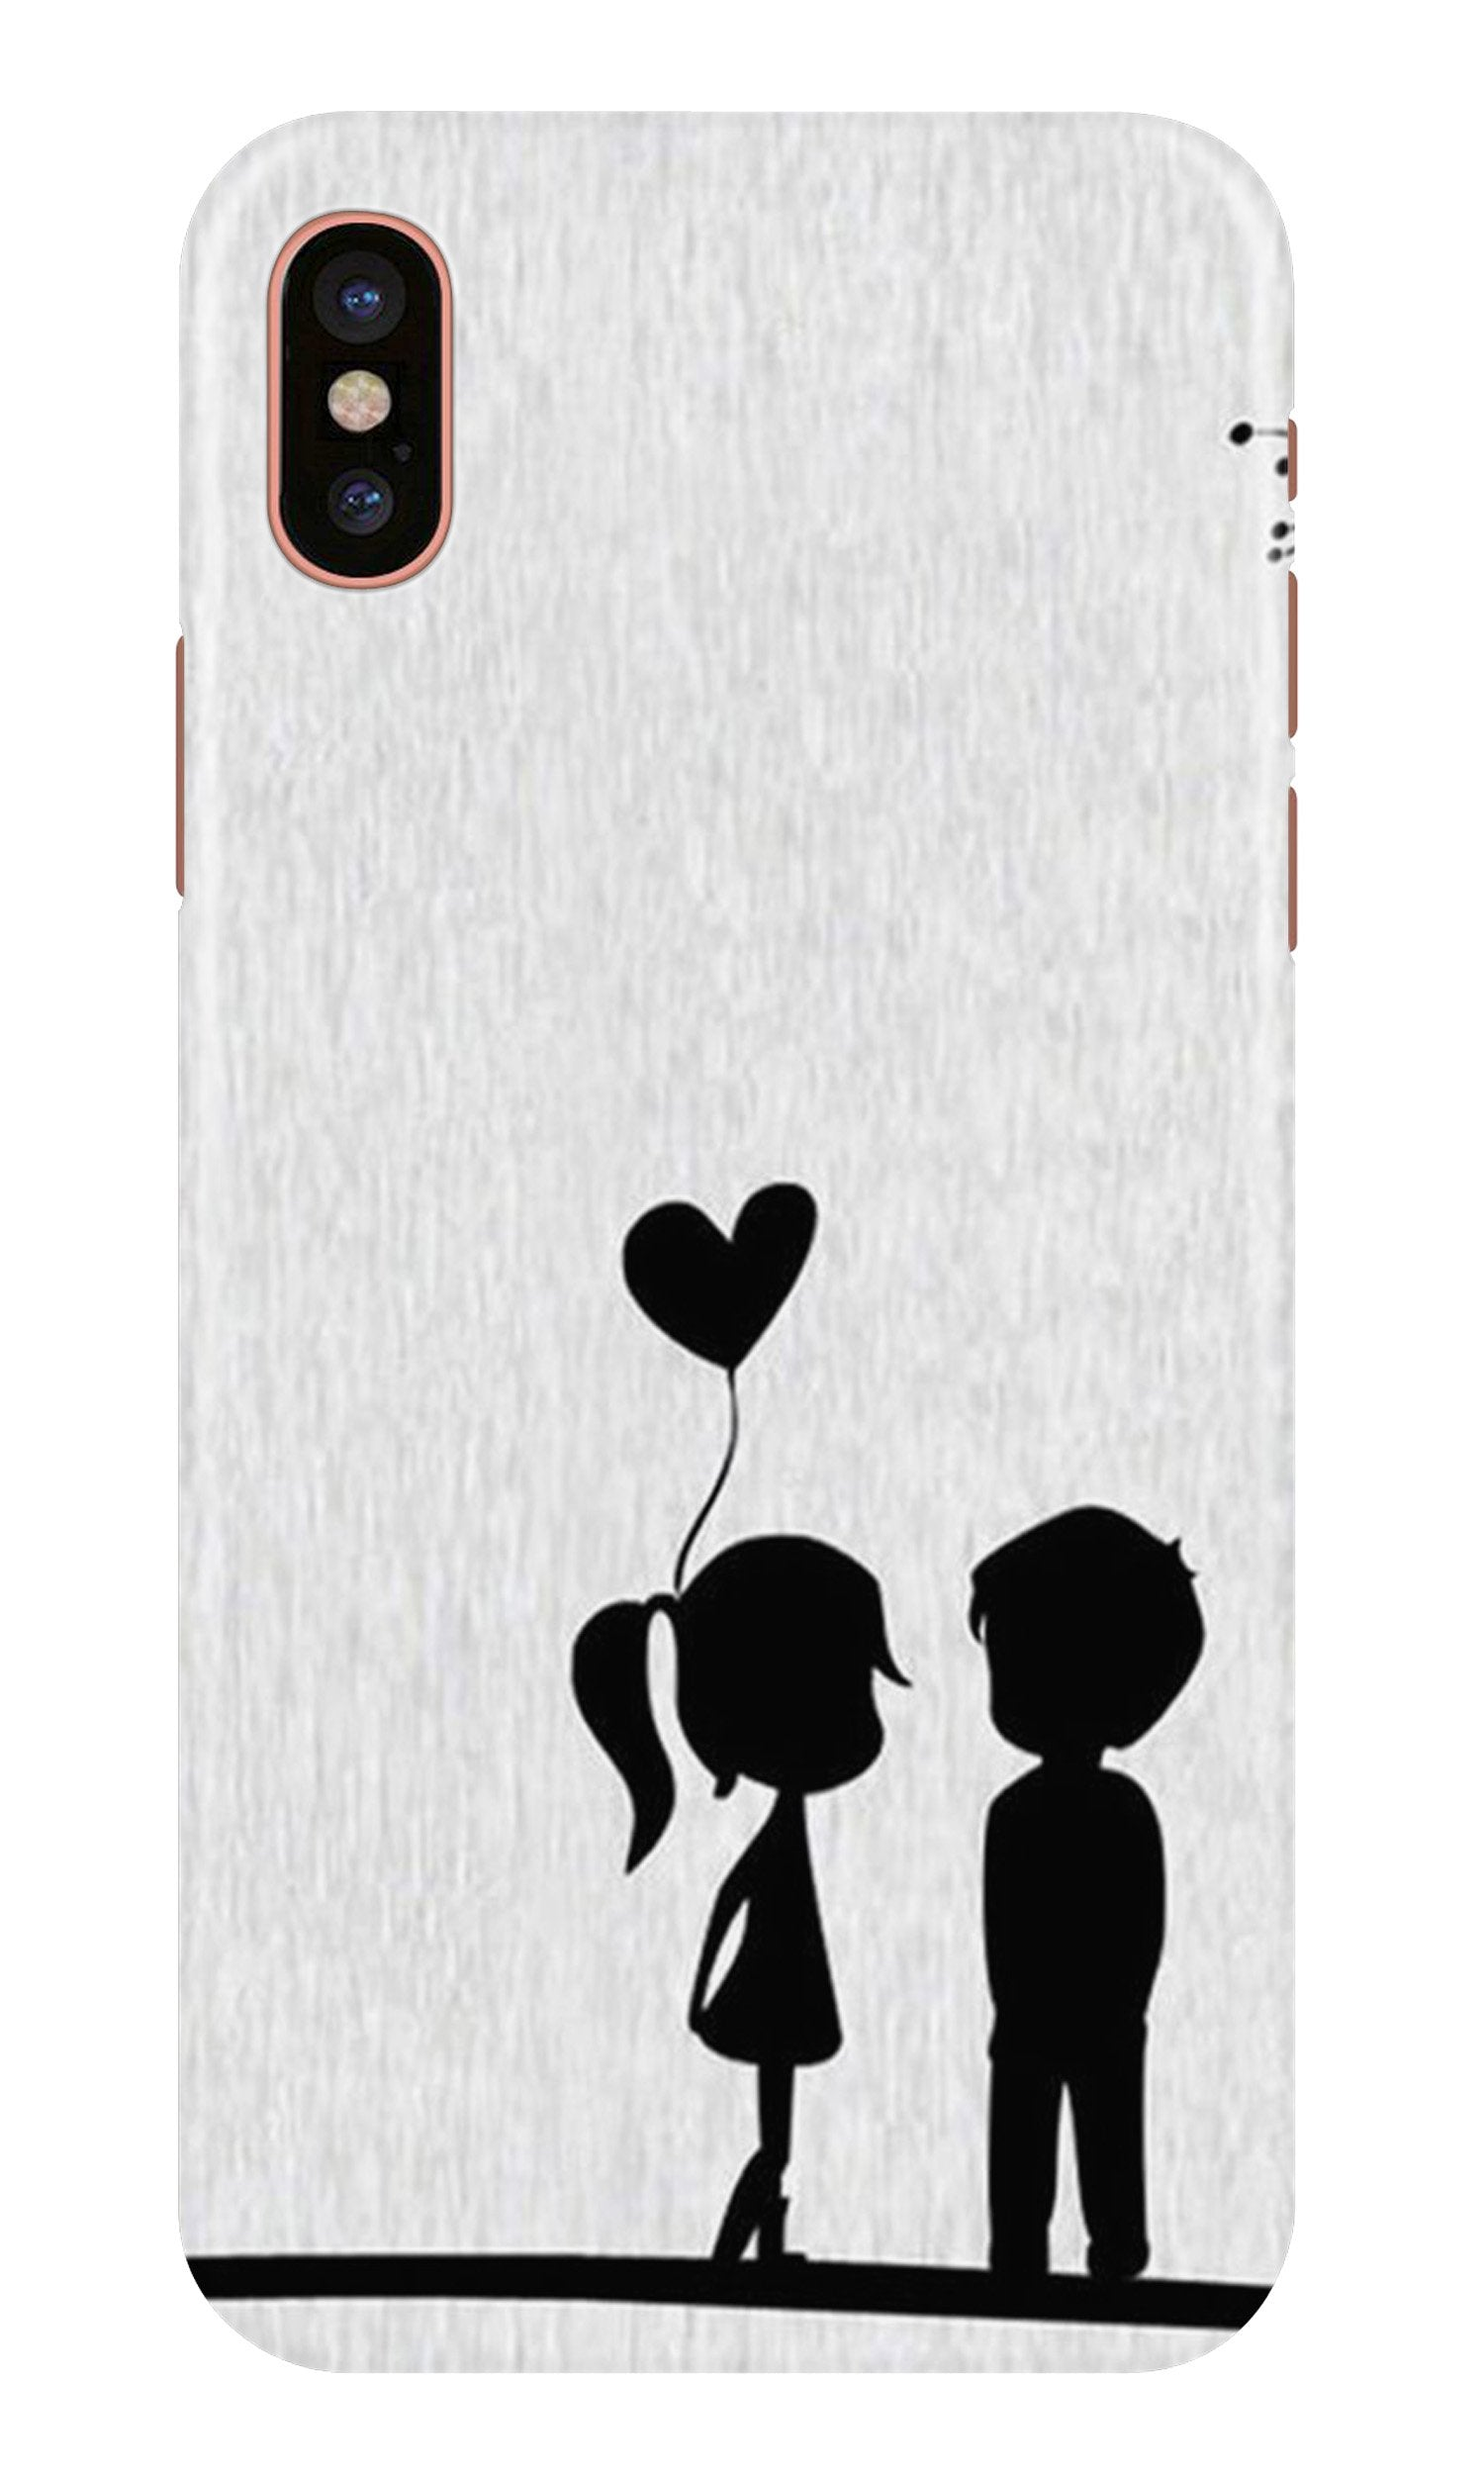 Cute Kid Couple Case for iPhone Xr (Design No. 283)